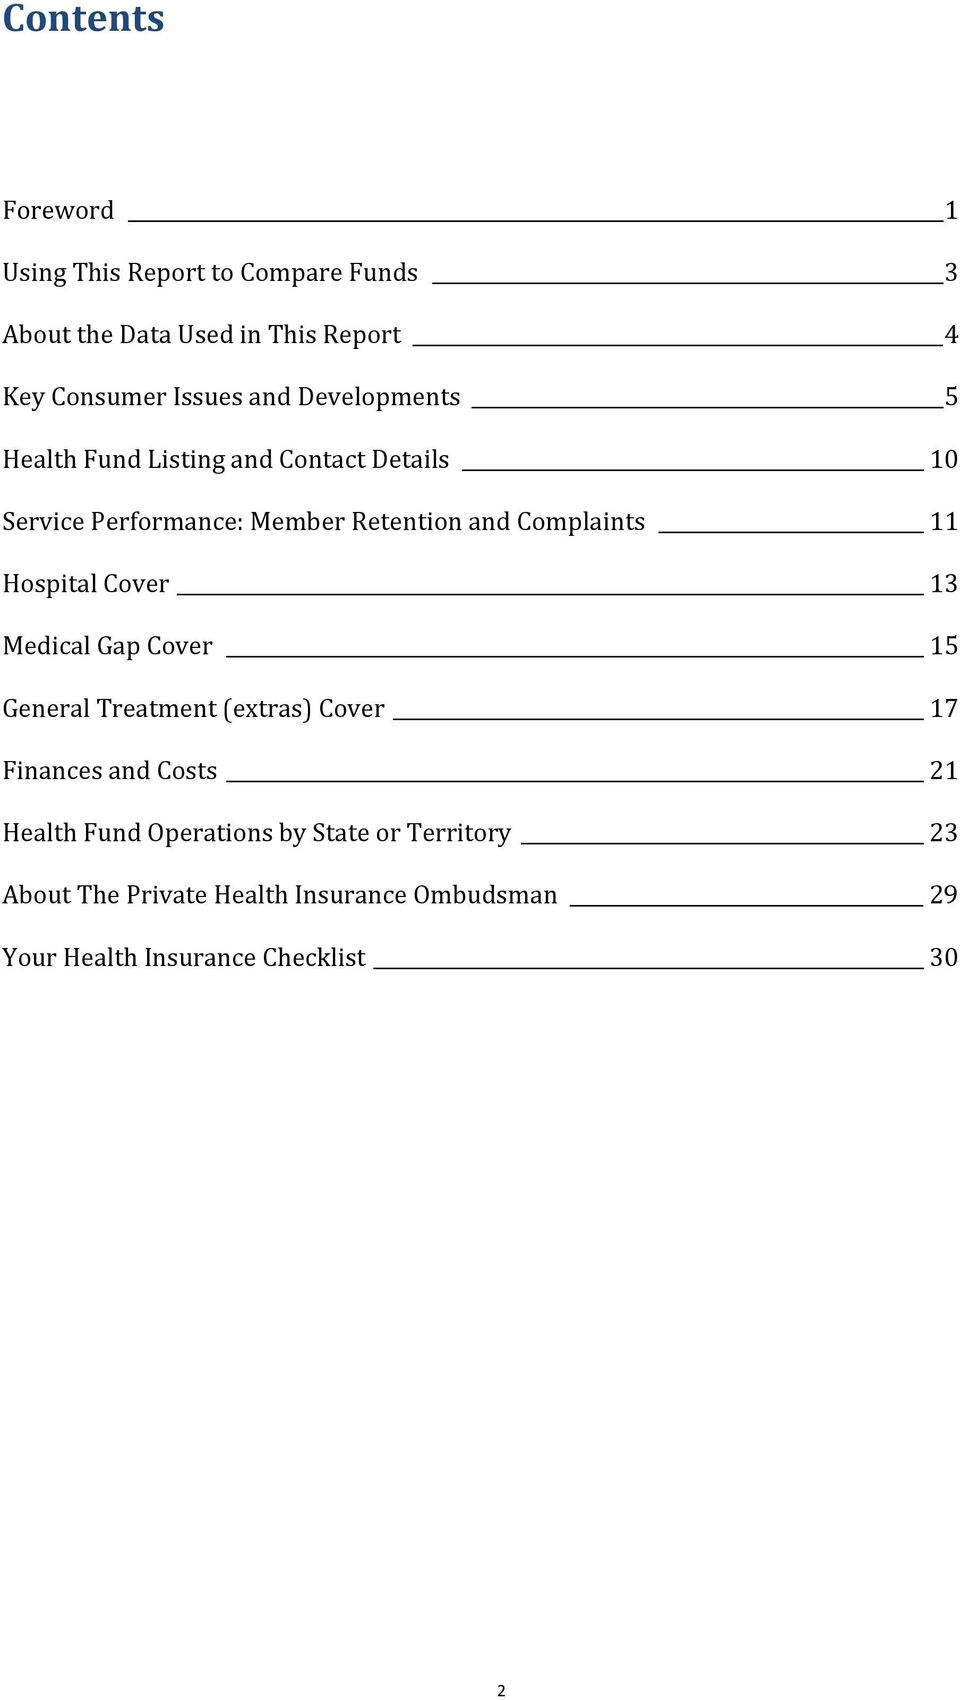 11 Hospital Cover 13 Medical Gap Cover 15 General Treatment (extras) Cover 17 Finances and Costs 21 Health Fund